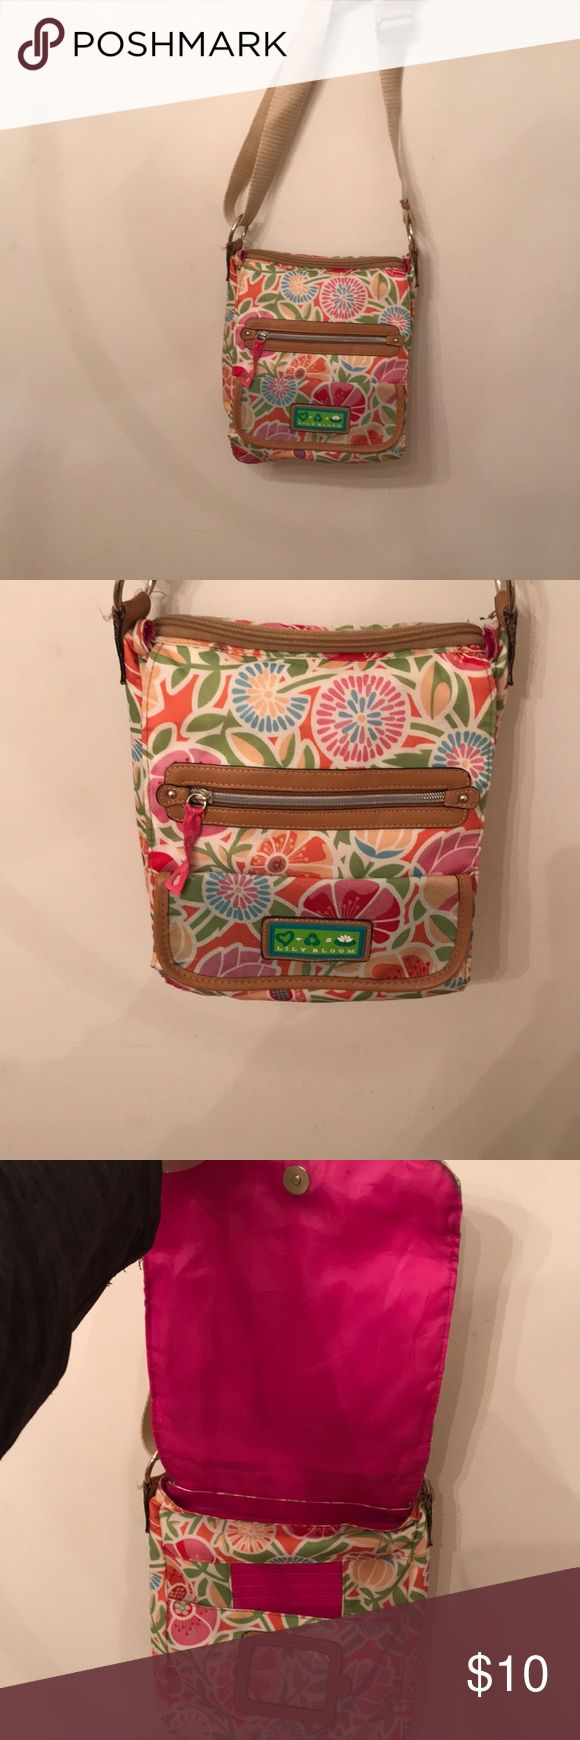 Lily Bloom crossbody style ladies purse floral From Belks dept store only carried once Retailed $55 in Asheville NC Belks this is the handiest crossbody if you love that kinda style like New . lily bloom Bags Crossbody Bags